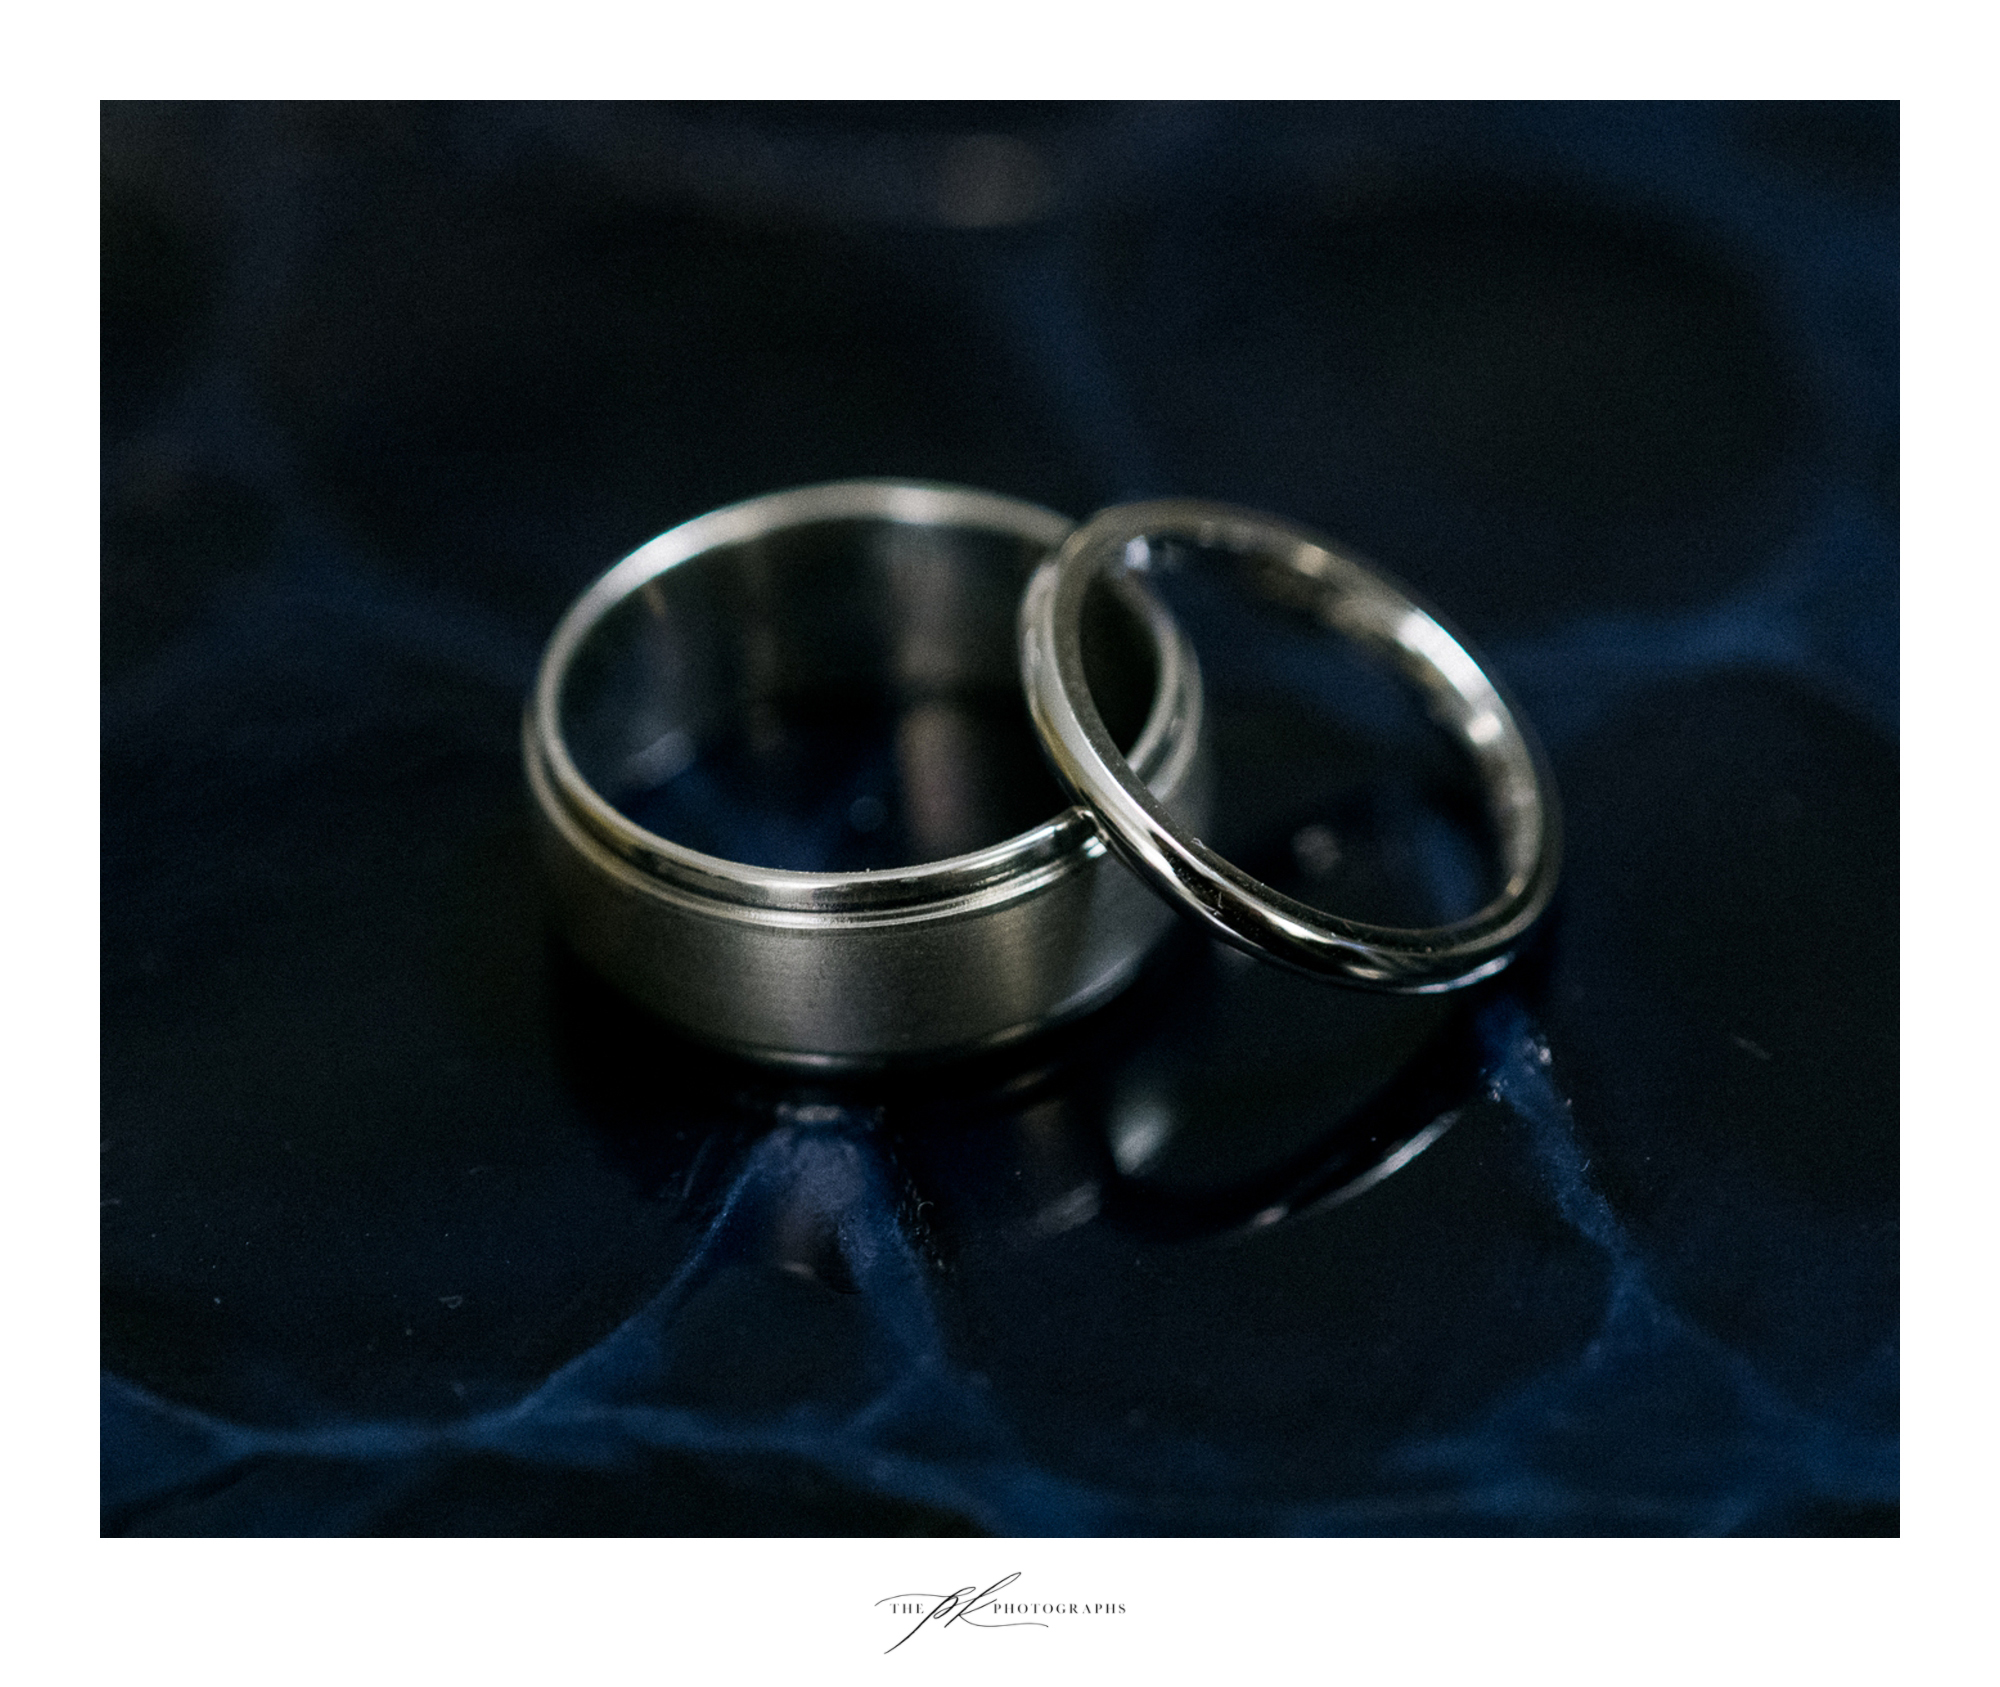 Bride and groom's silver wedding ring set.